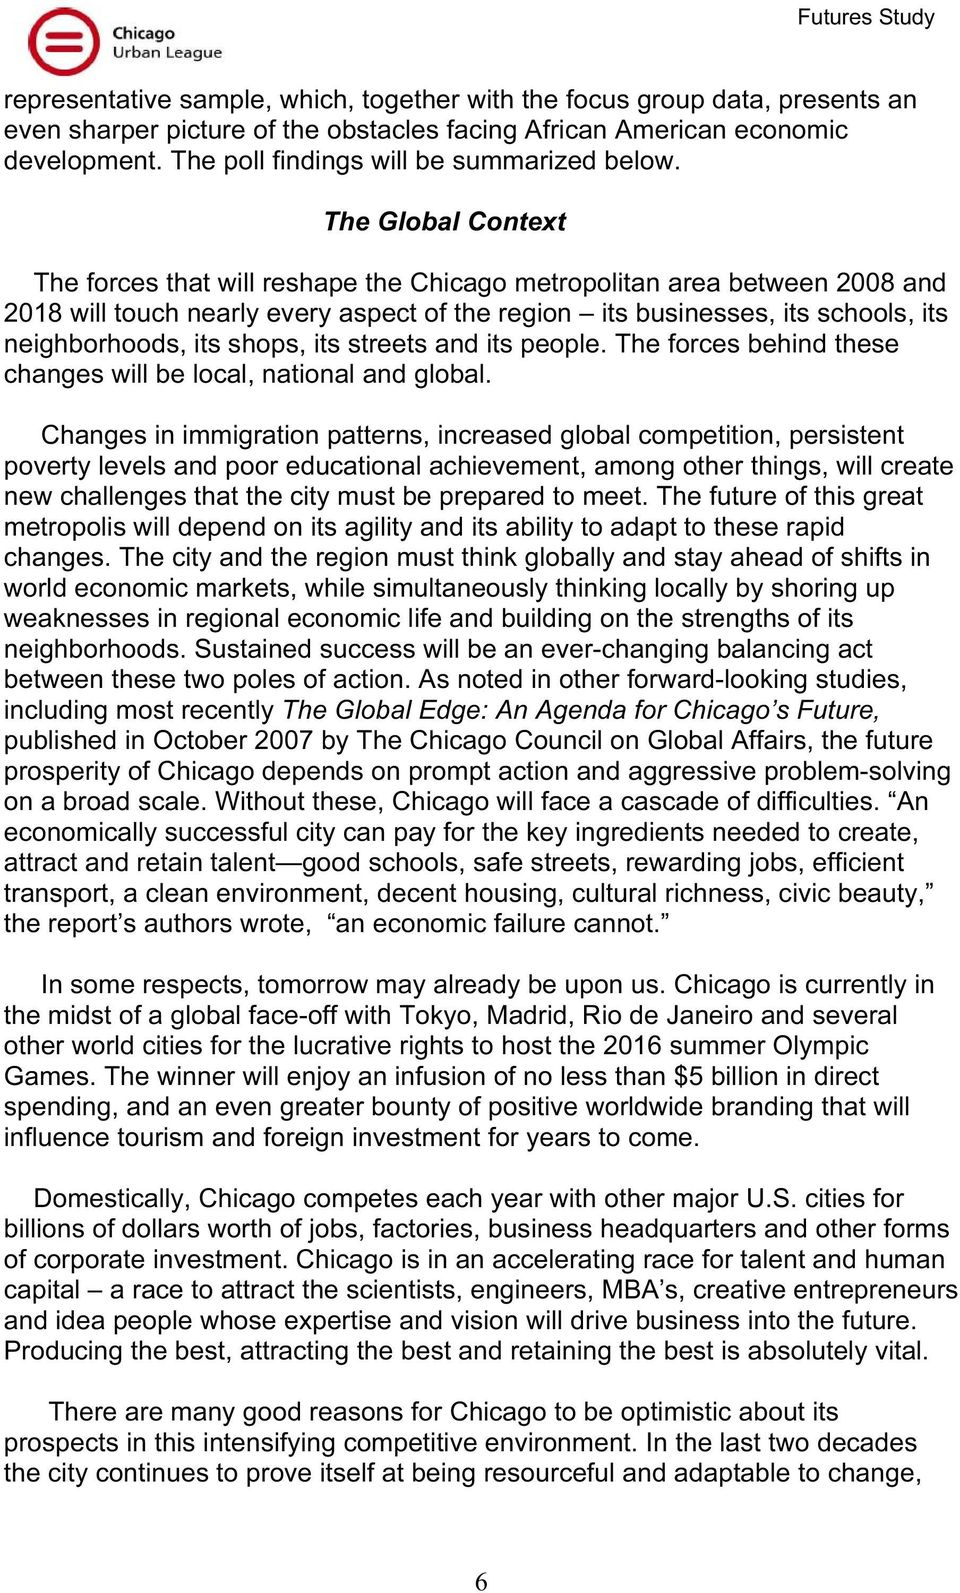 The Global Context The forces that will reshape the Chicago metropolitan area between 2008 and 2018 will touch nearly every aspect of the region its businesses, its schools, its neighborhoods, its